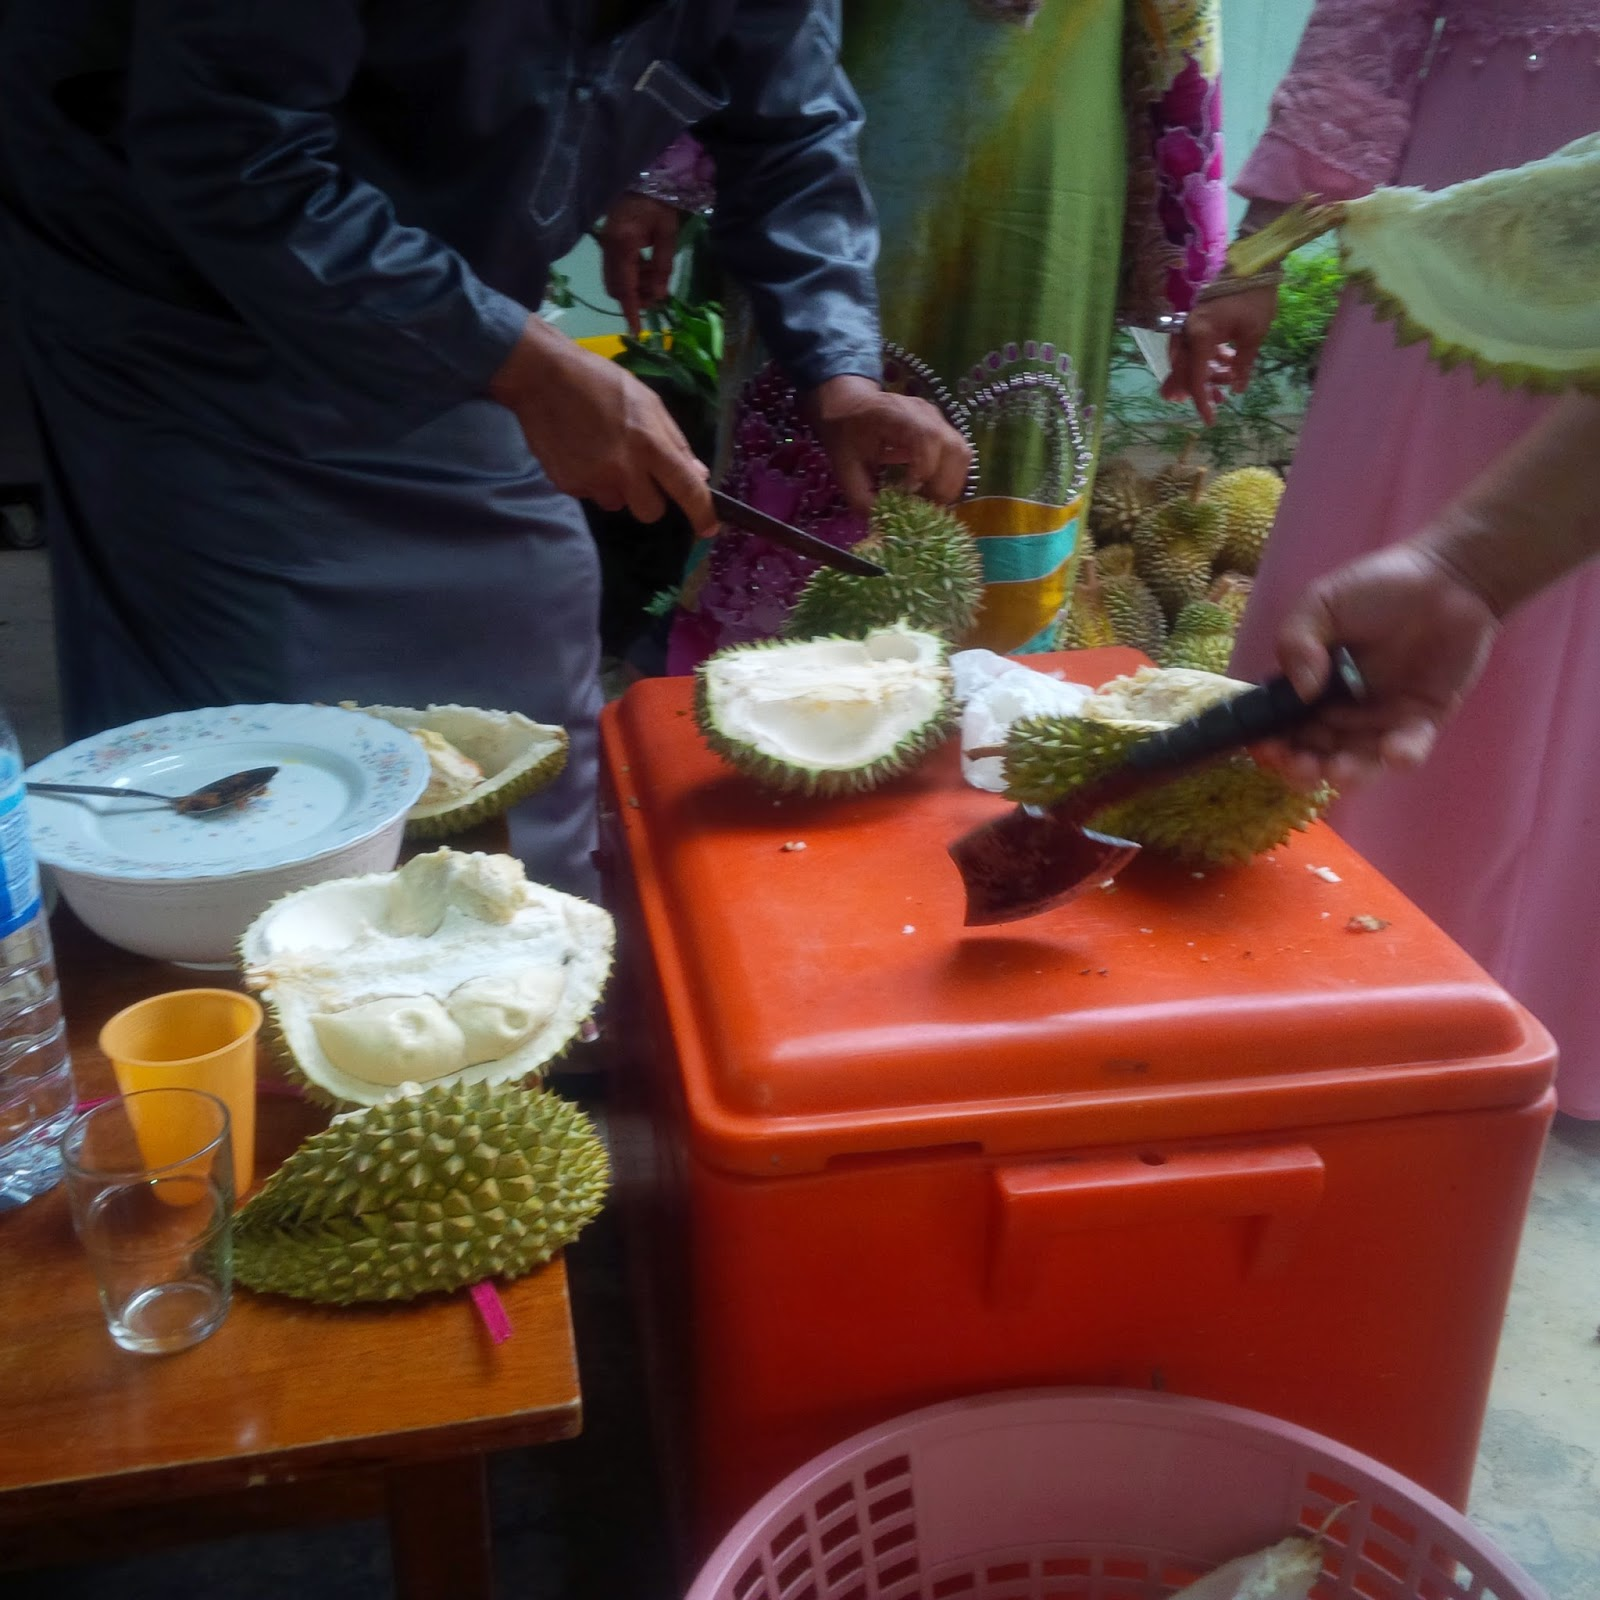 durian fruit, durian malaysia, durian taste, food, gardening, how to eat durian, how to plant durian, king of fruits malaysia,